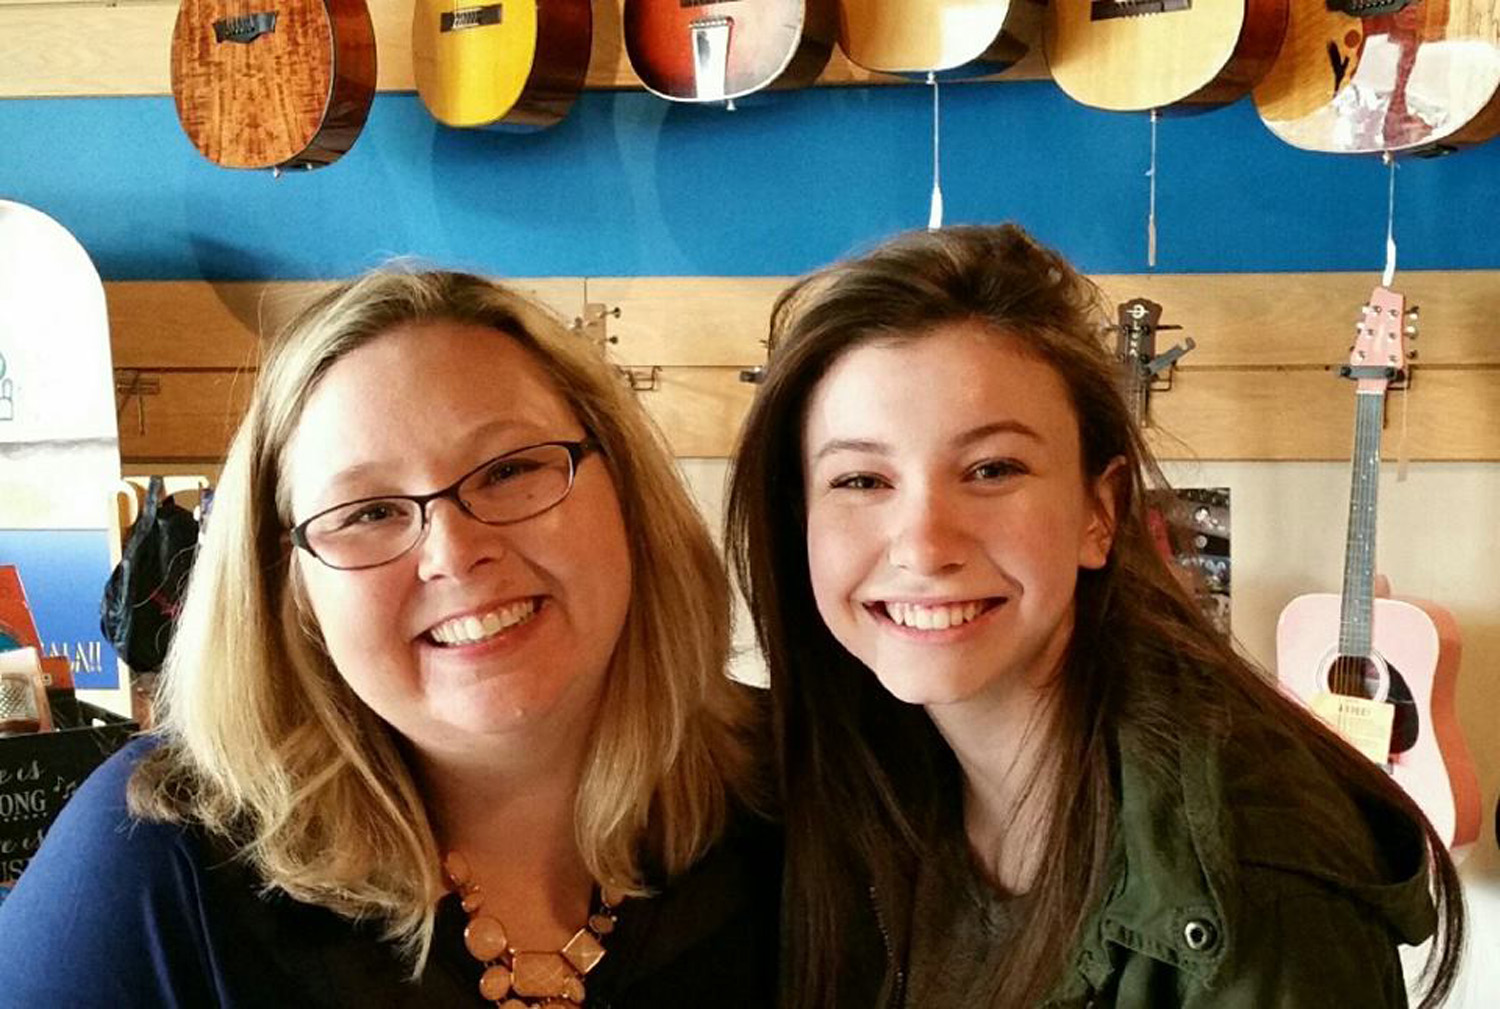 Actress and vocalist Katelyn Nacon, who plays Enid on  The Walking Dead , stops by Ponier Music Woodstock to see former teacher Camilla Sanders and preview some new songs.